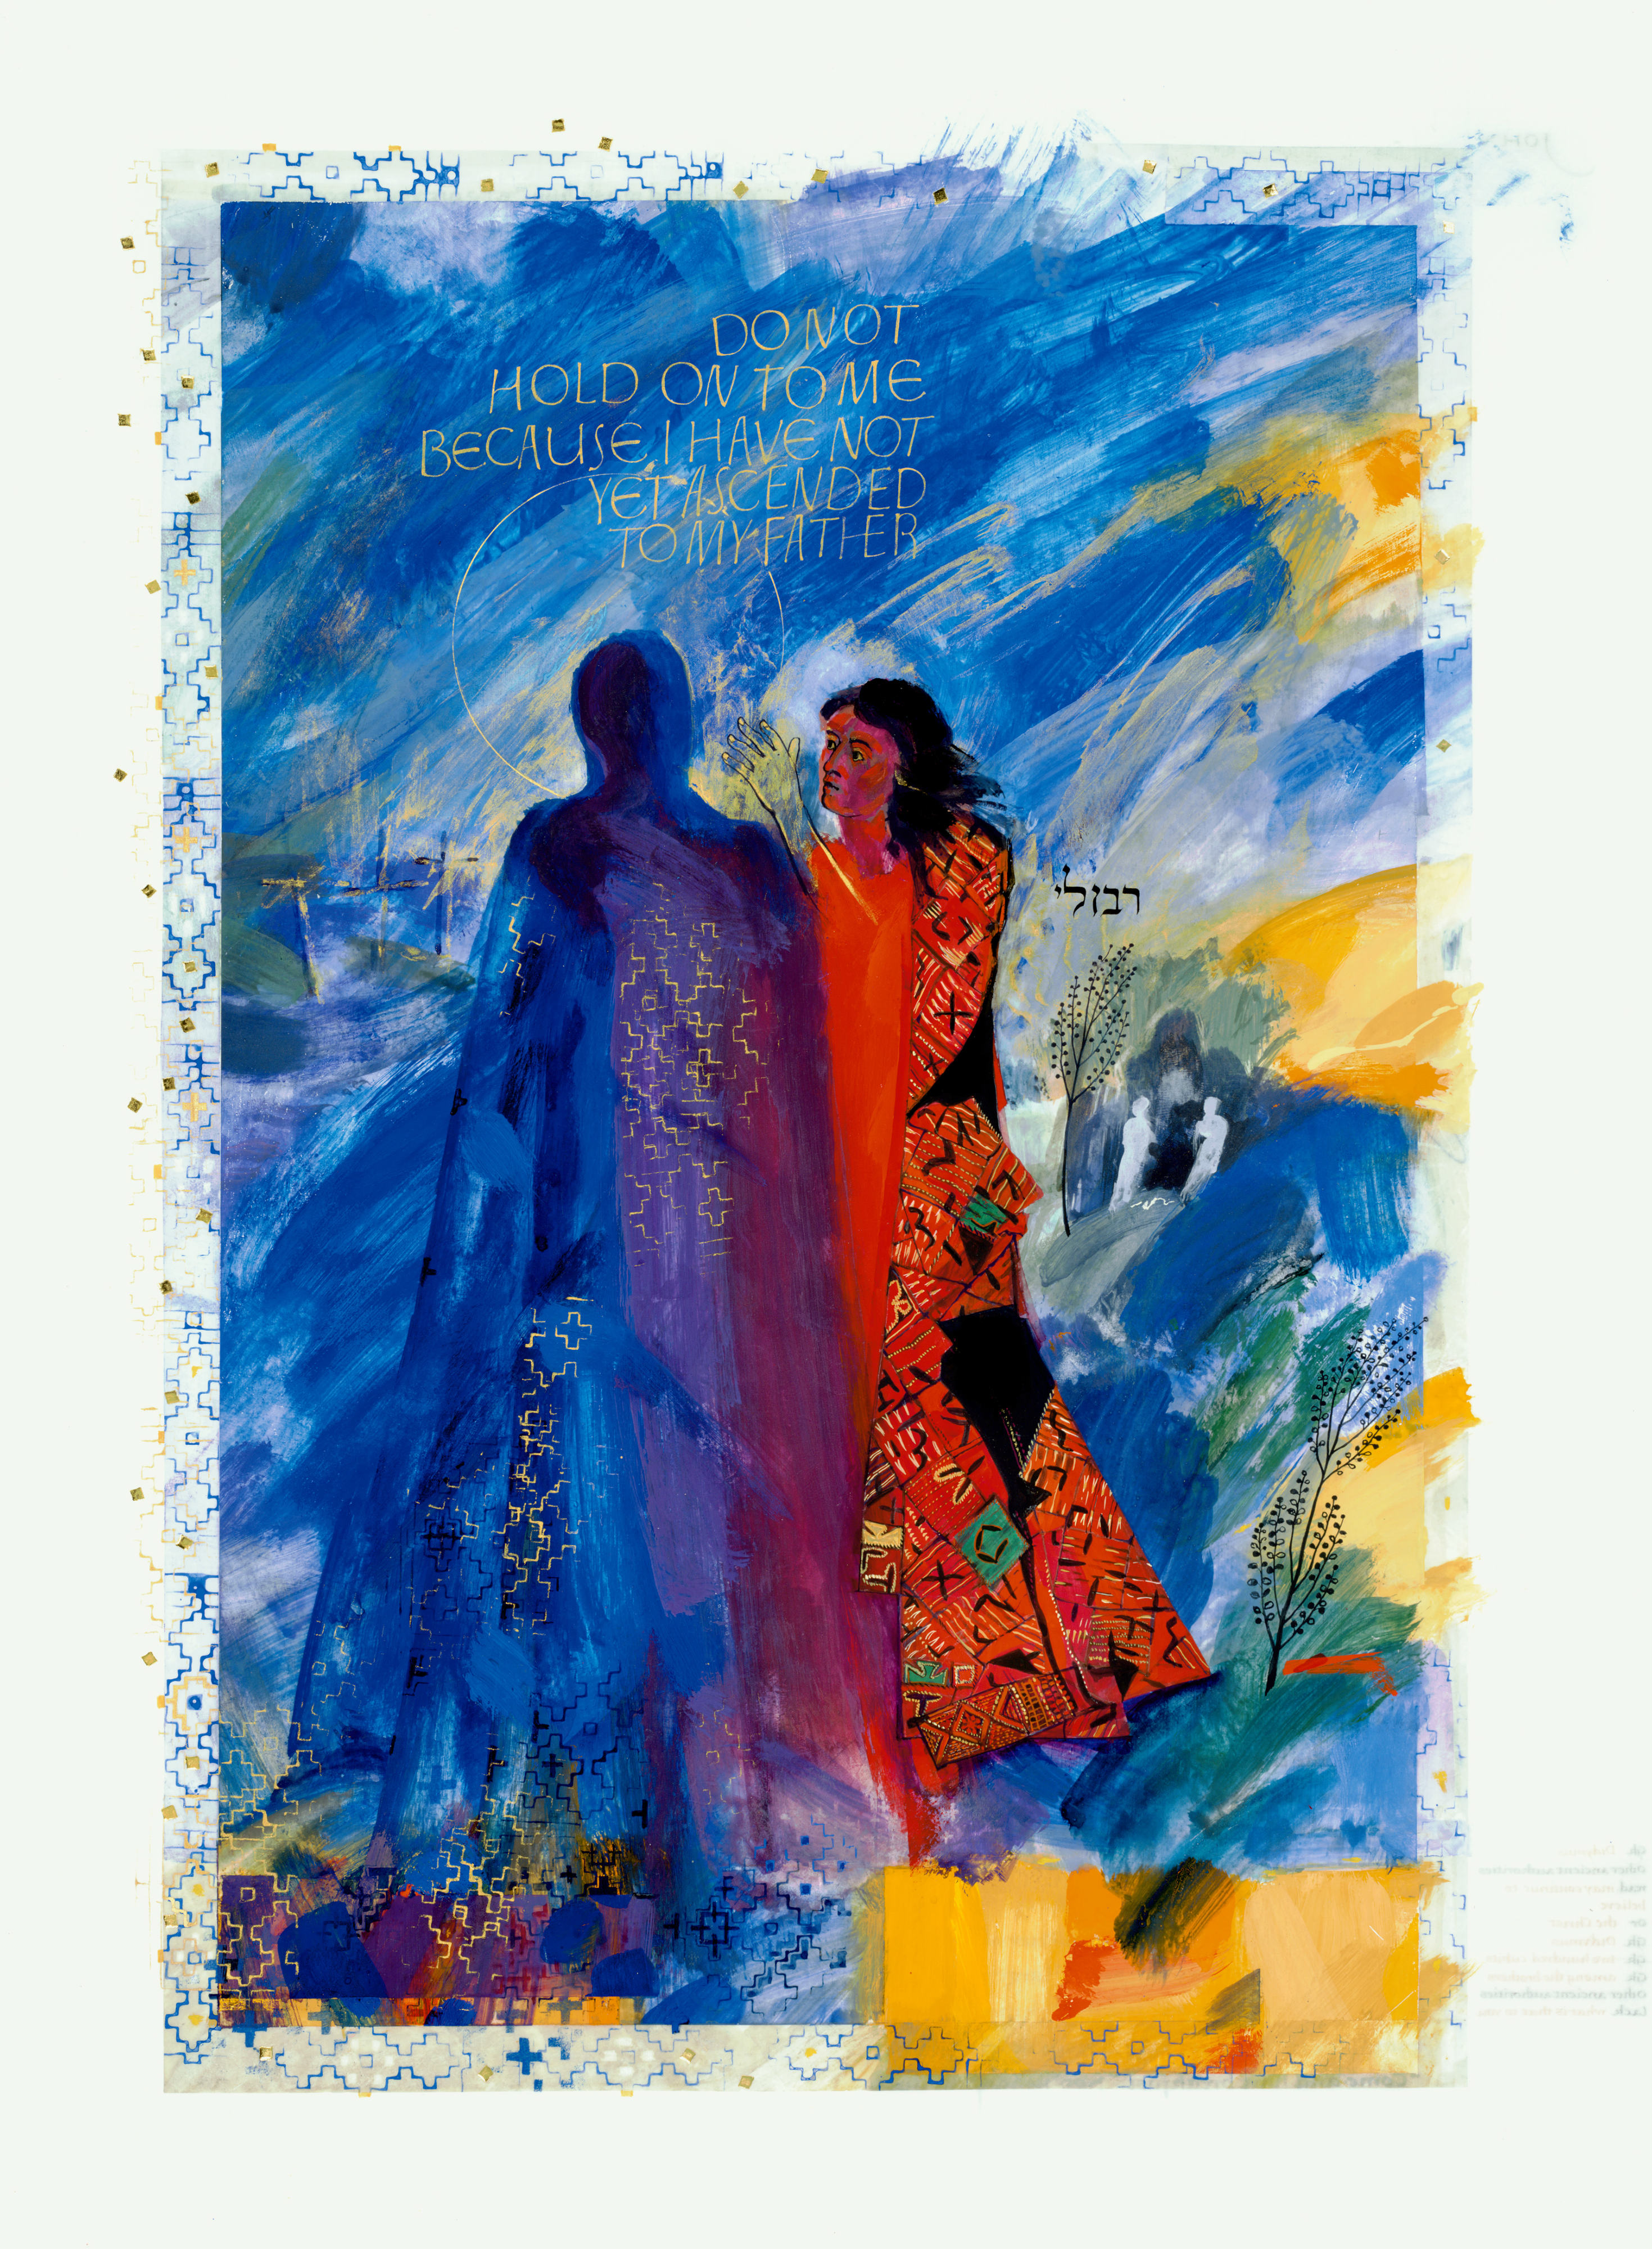 Resurrection, Donald Jackson, Copyright 2002, The Saint John's Bible, Saint John's University, Collegeville, Minnesota USA. Used by permission. All rights reserved.